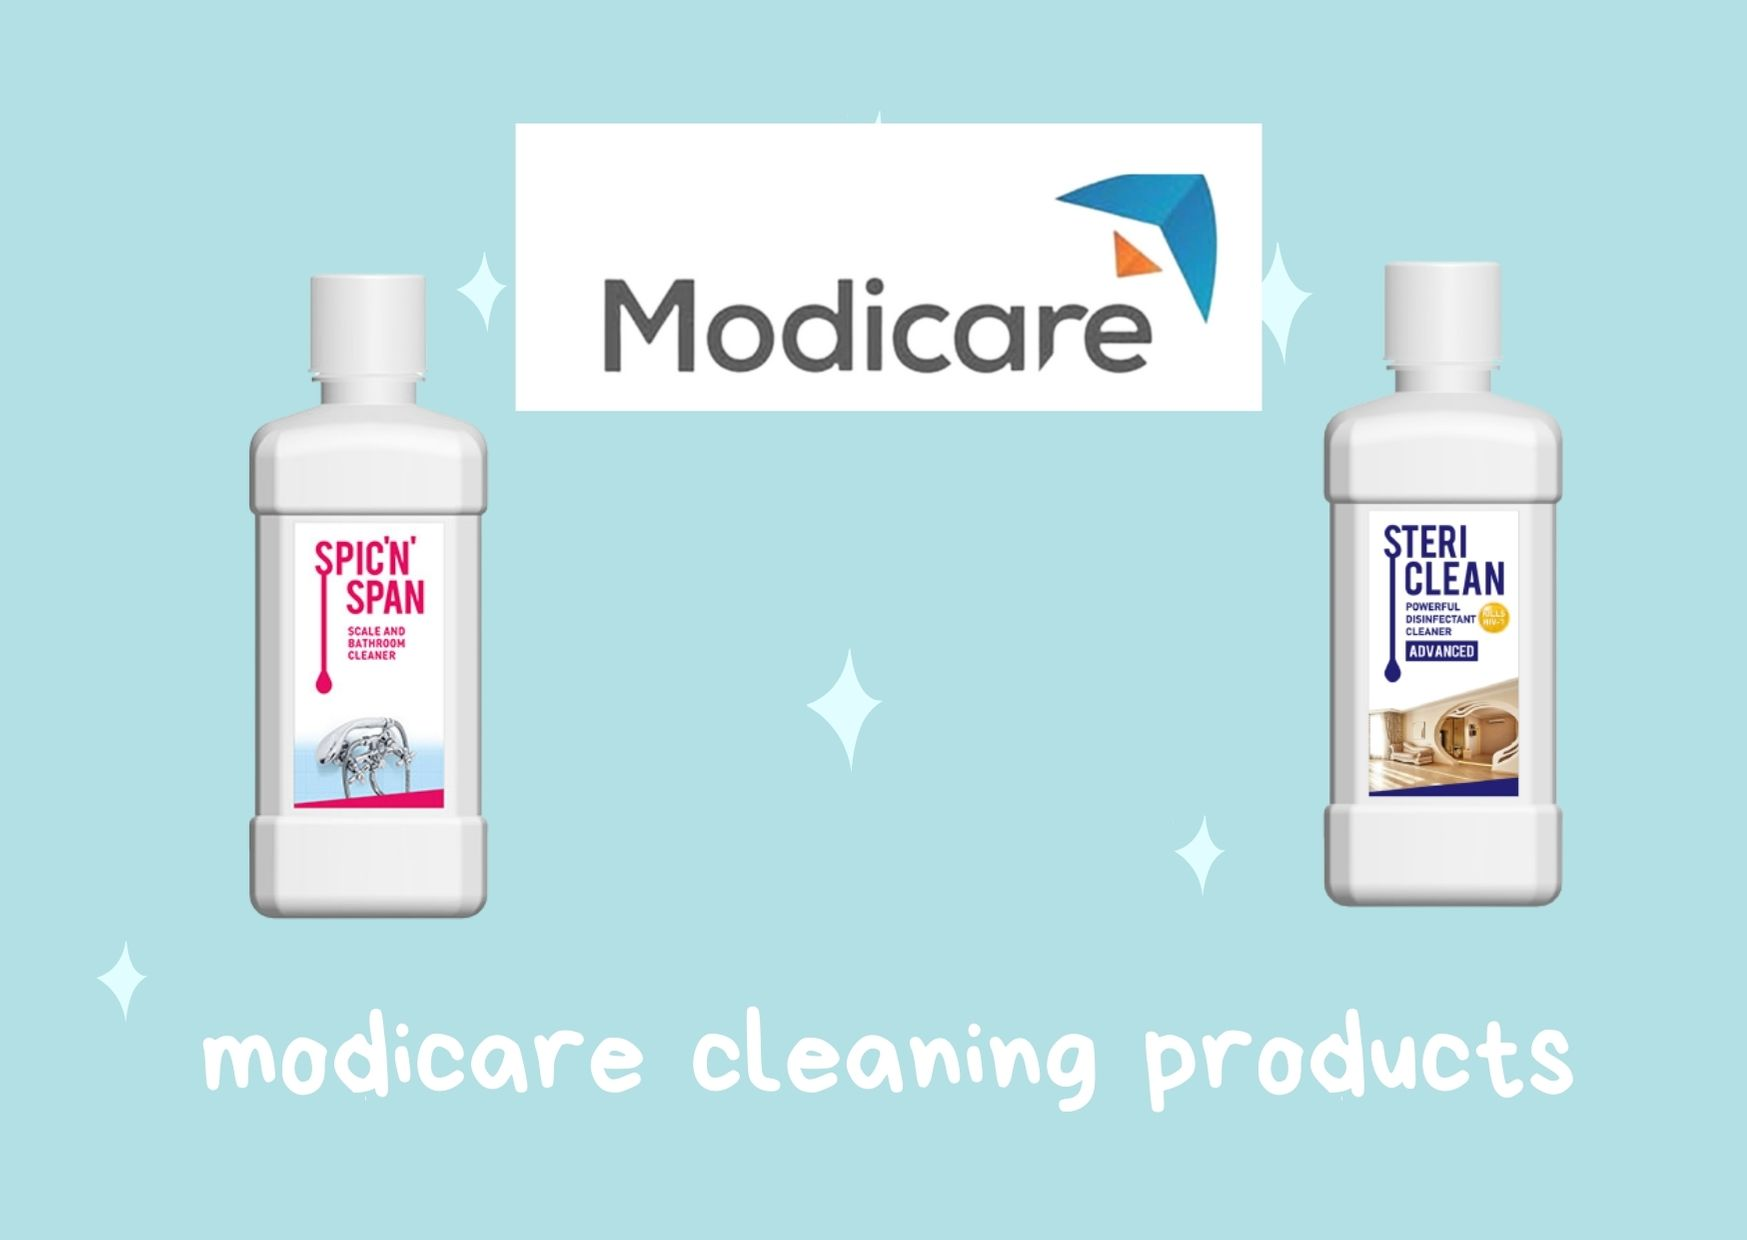 modicare steri clean products details hindi